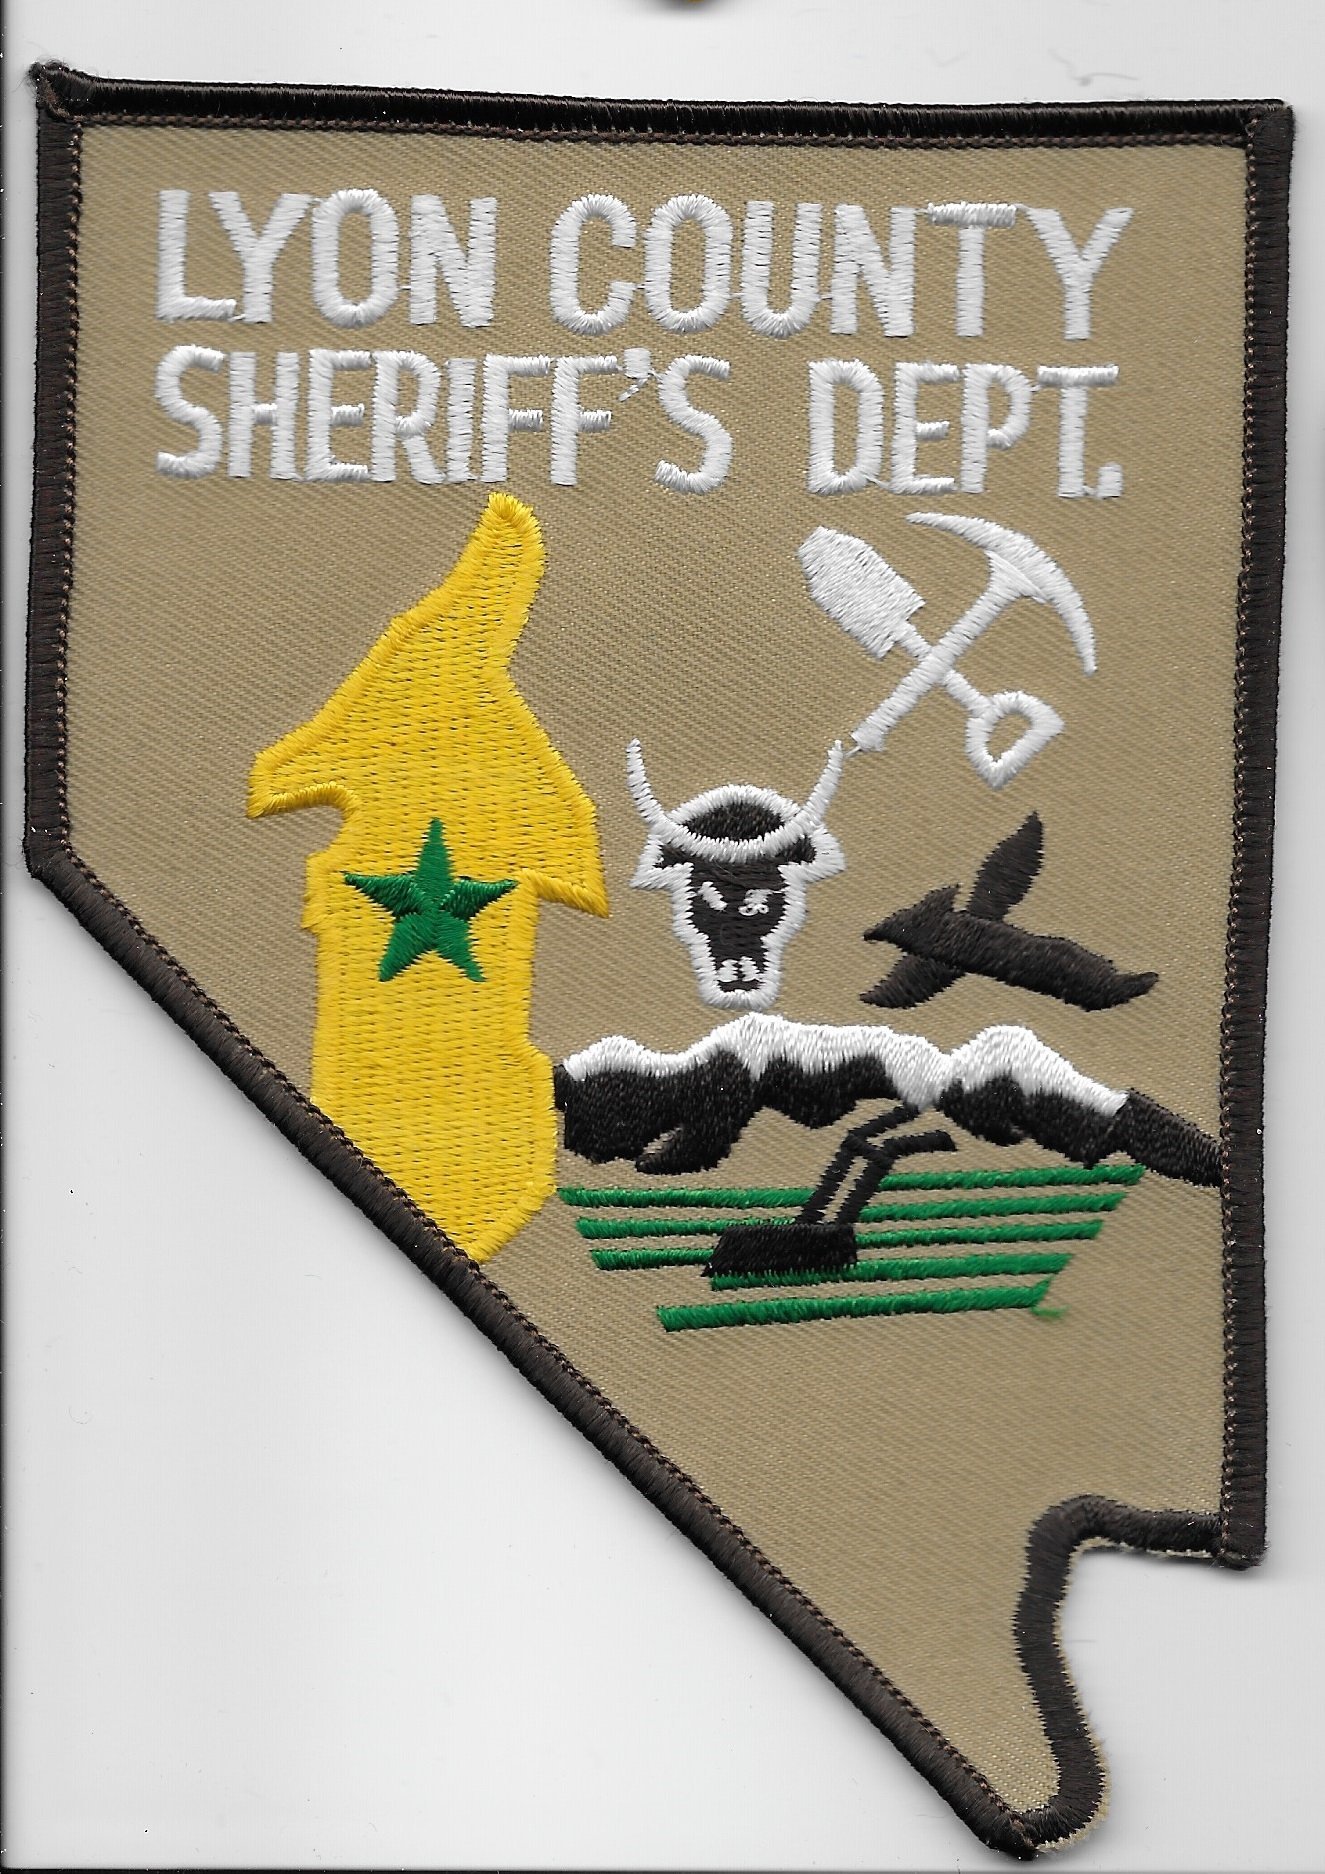 Lyon County Sheriff NV